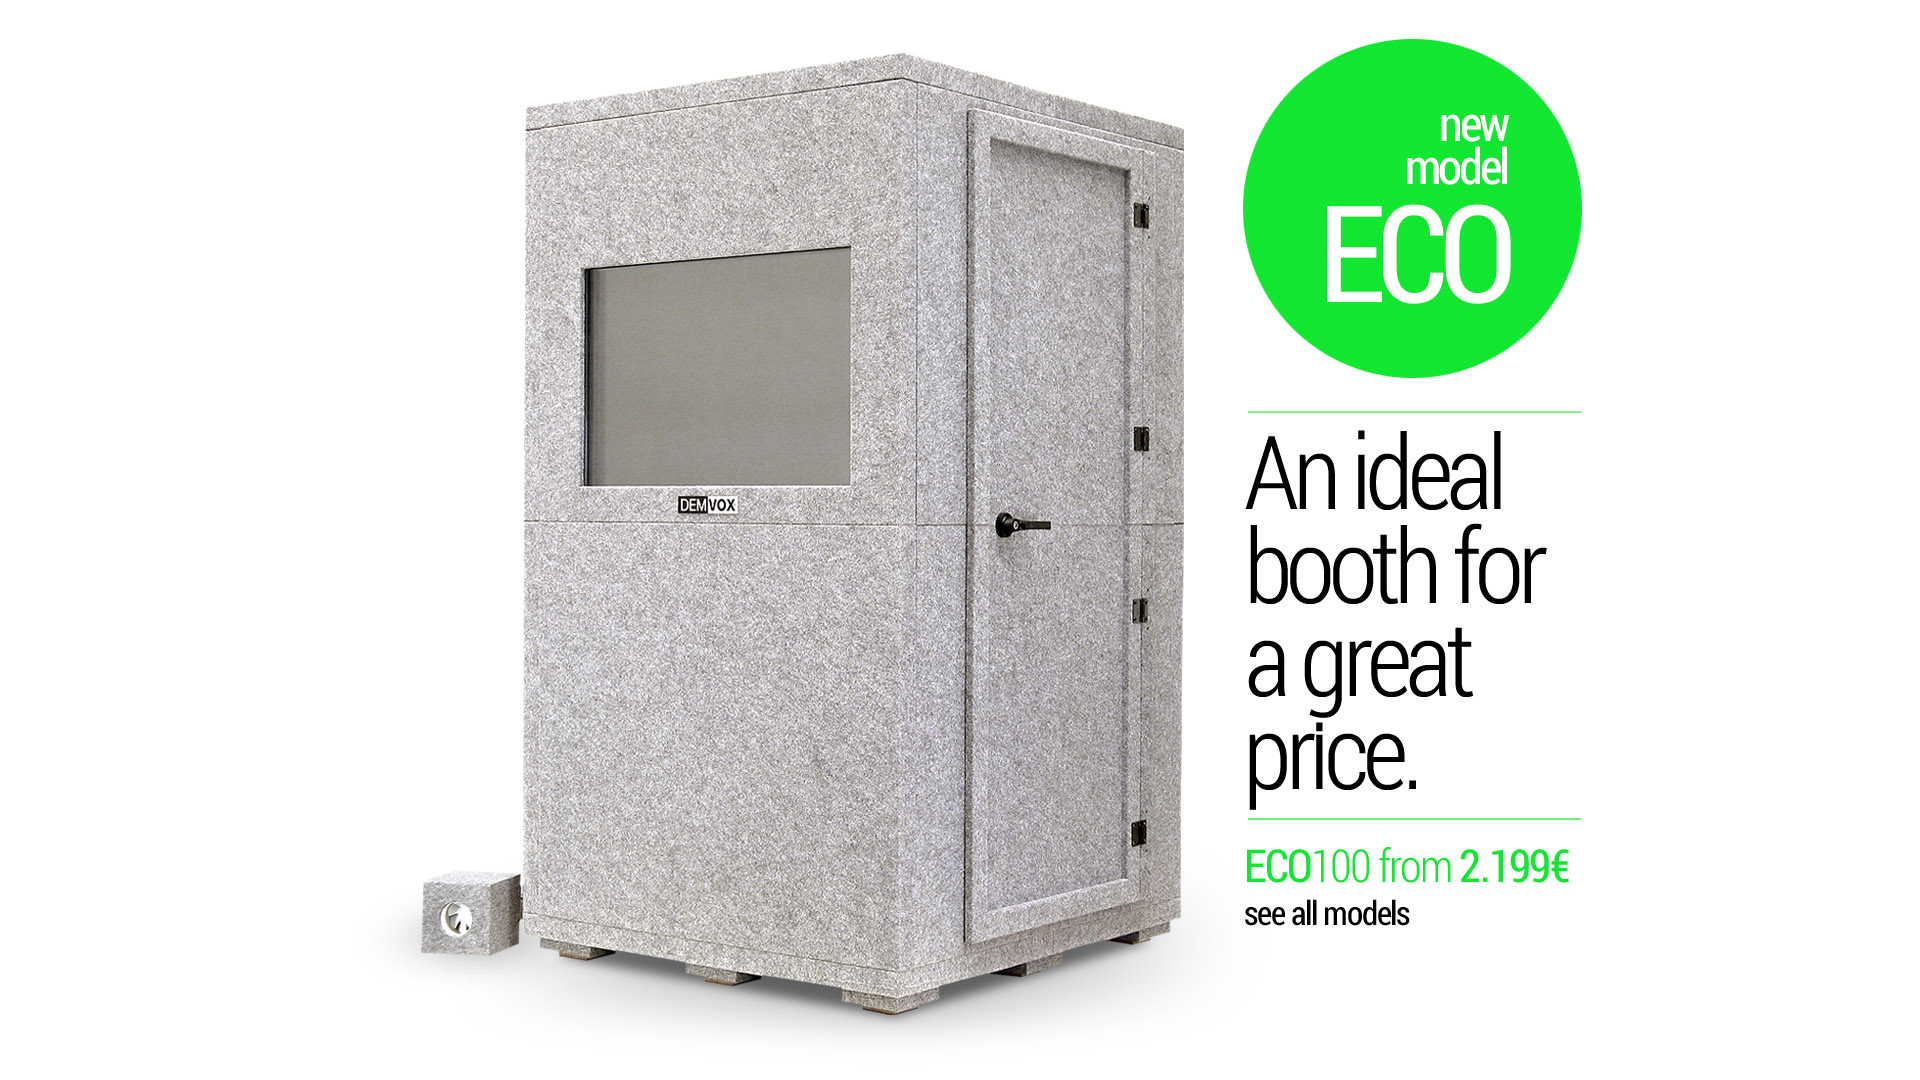 Click for more information about ECO models